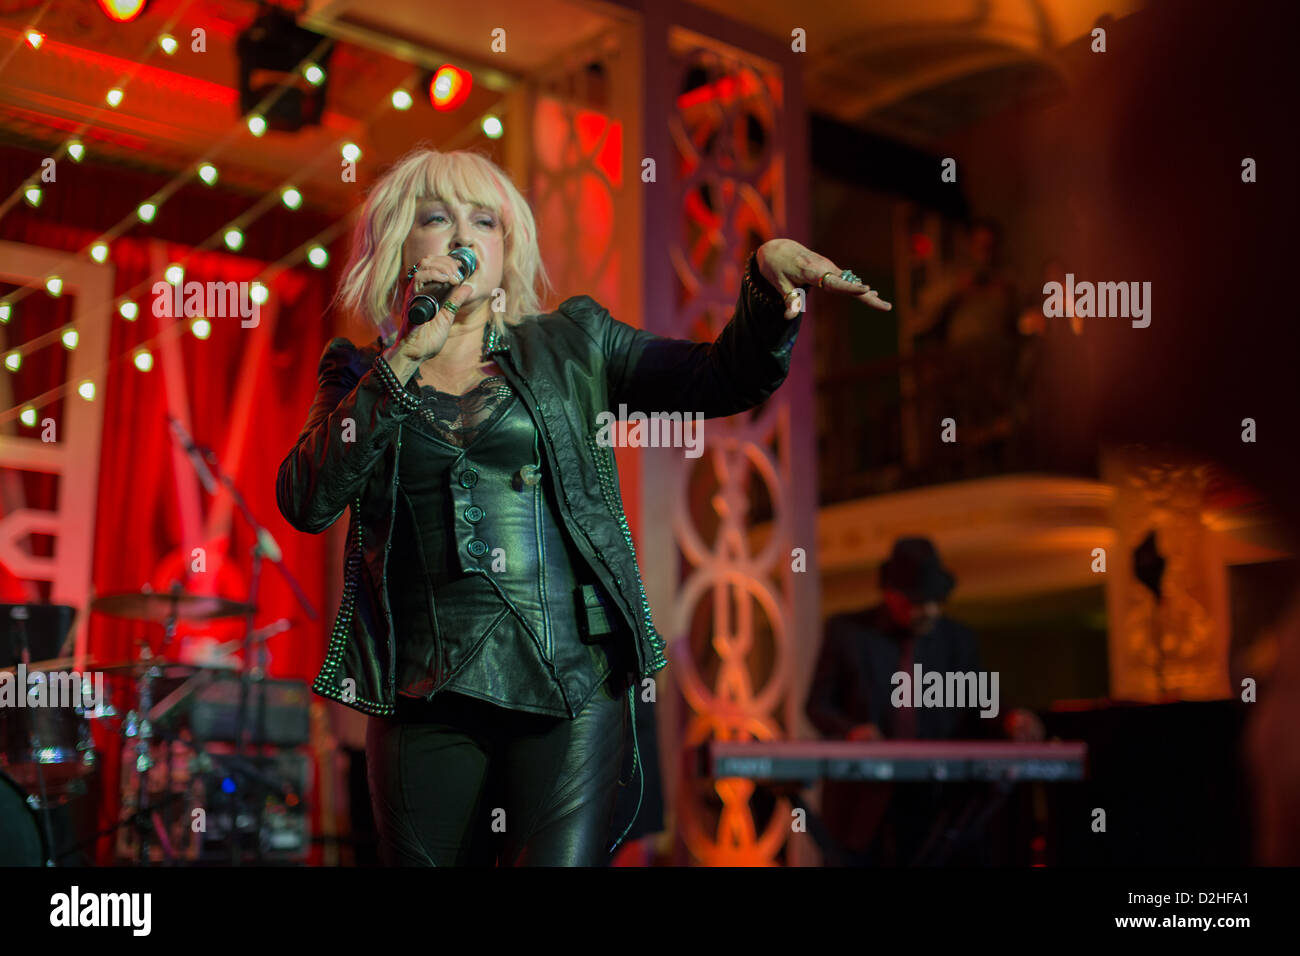 Monday, January 21st, 2013, Cindi Lauper performs her greatest hits at the Out for Equality Ball 2013. - Stock Image